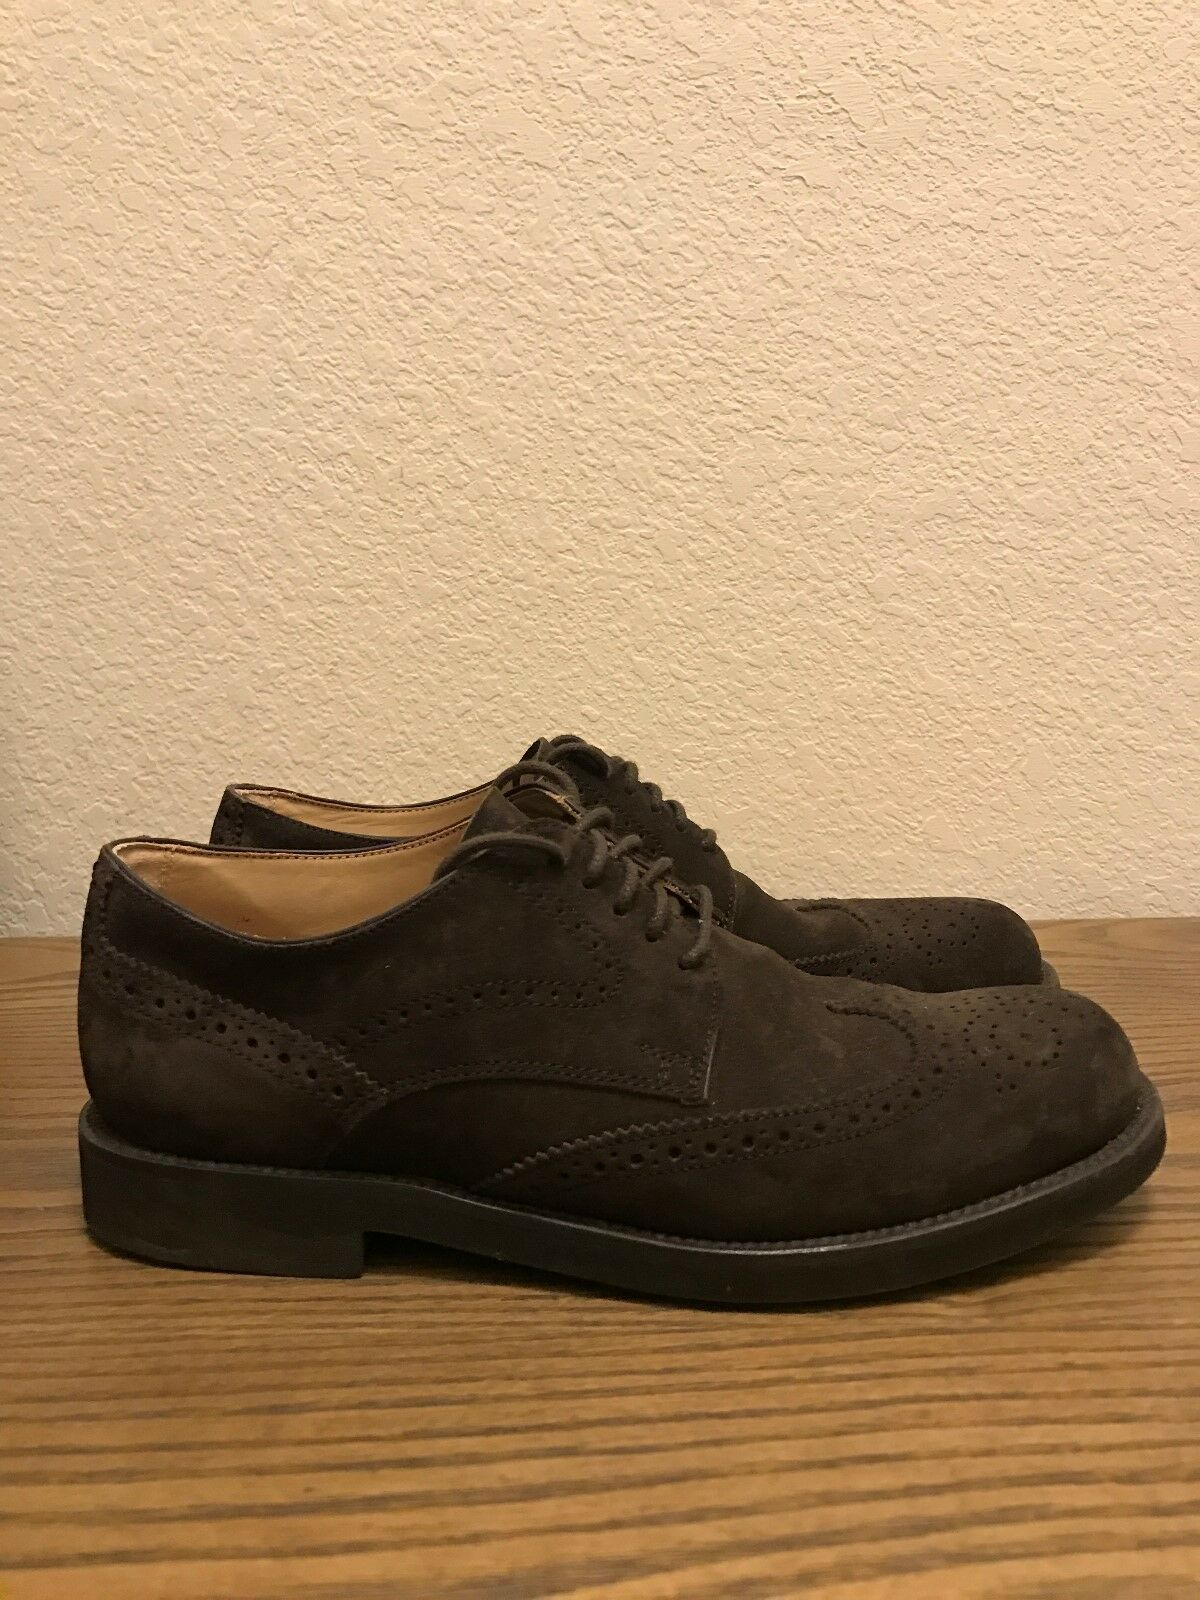 Uomo's Uomo's Uomo's Tods LACE-UP SHOES IN SUEDE size 5.5 95c839